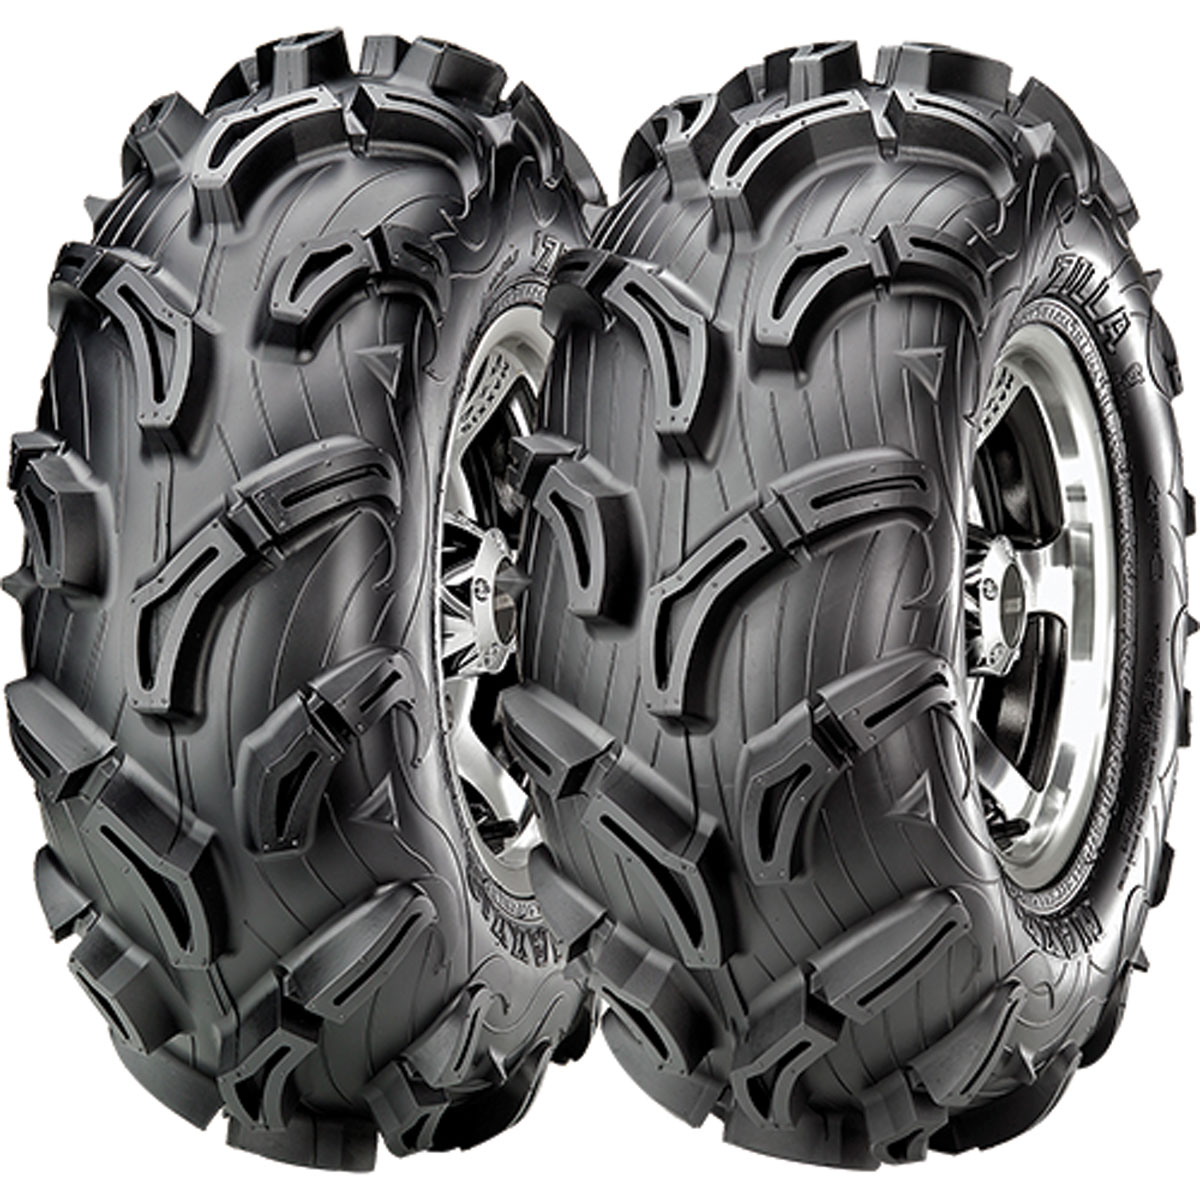 Offroad mud terrain tyres influence shoe lug design